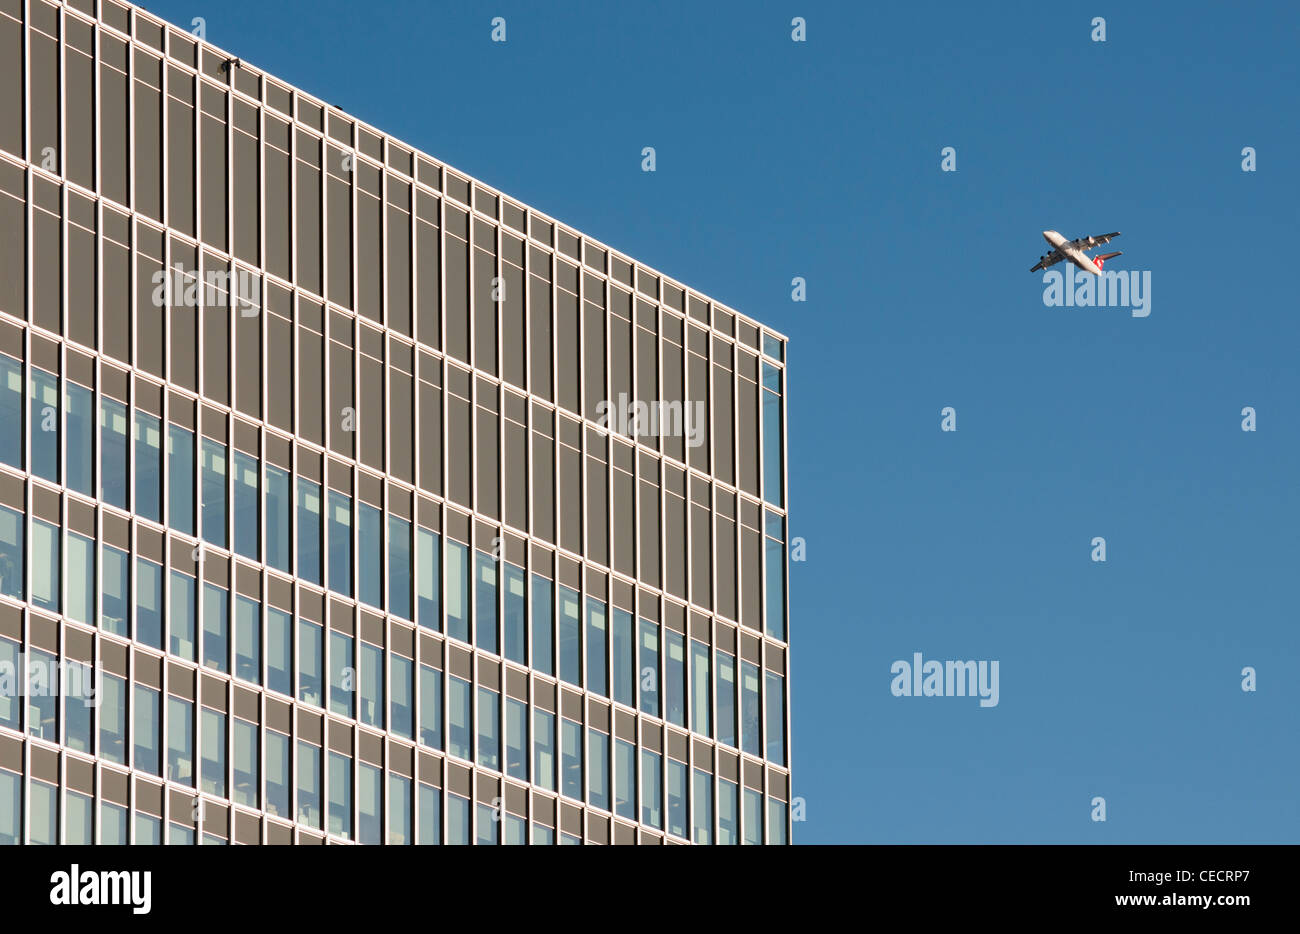 BAe Avro RJ100 Airliner and State Street Bank at 20 Churchill Place , Canary Wharf, Docklands, London, United Kingdom - Stock Image